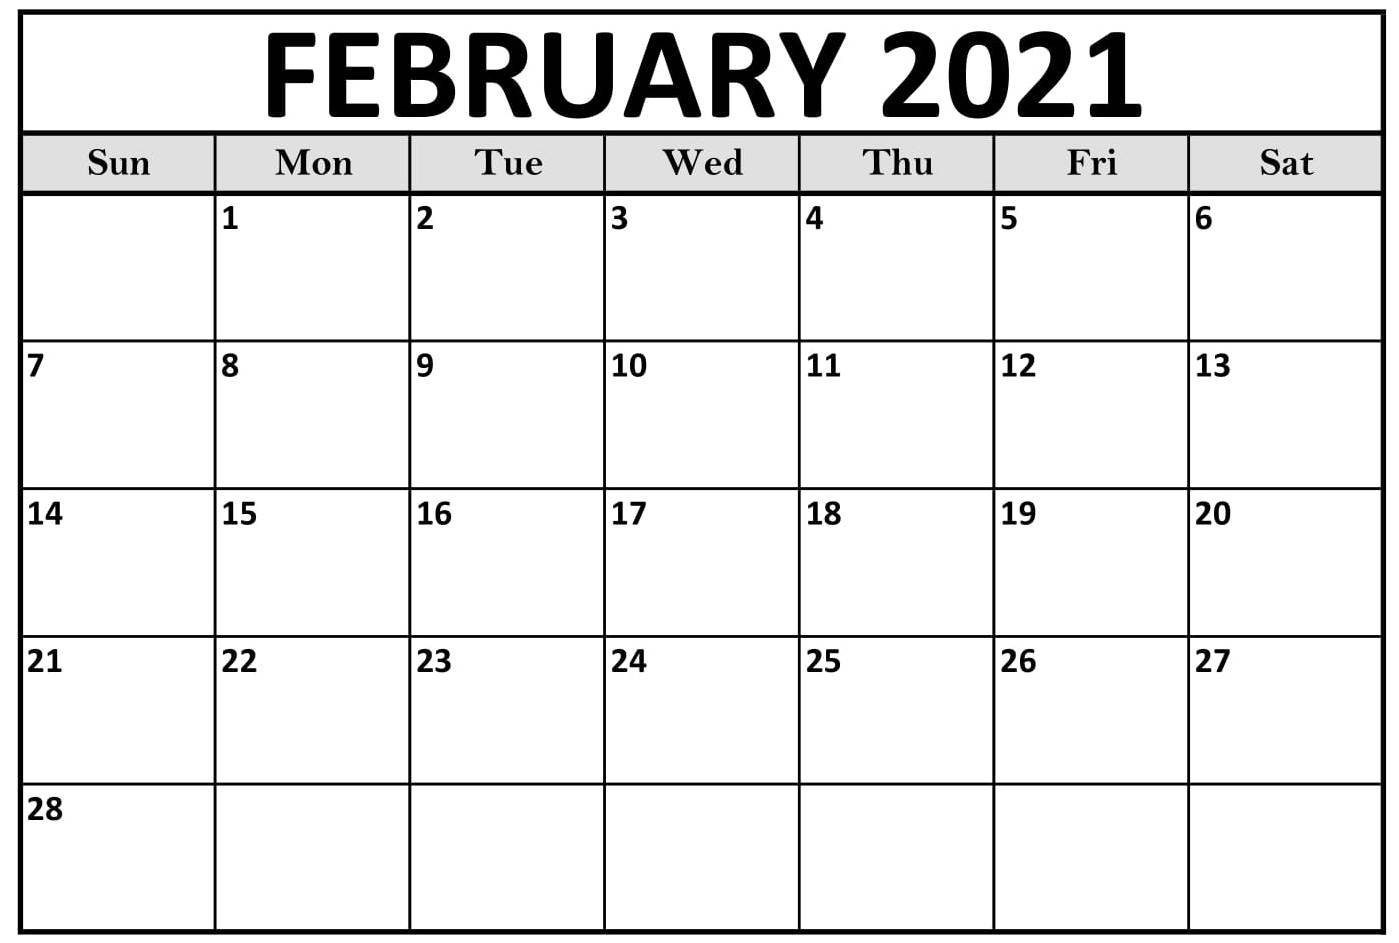 February 2021 Printable Calendar Monthly With Notes - Learnworksheet : Learn The Knowledge On throughout Free Printable Monthly Calendar 2021 With Lines Image